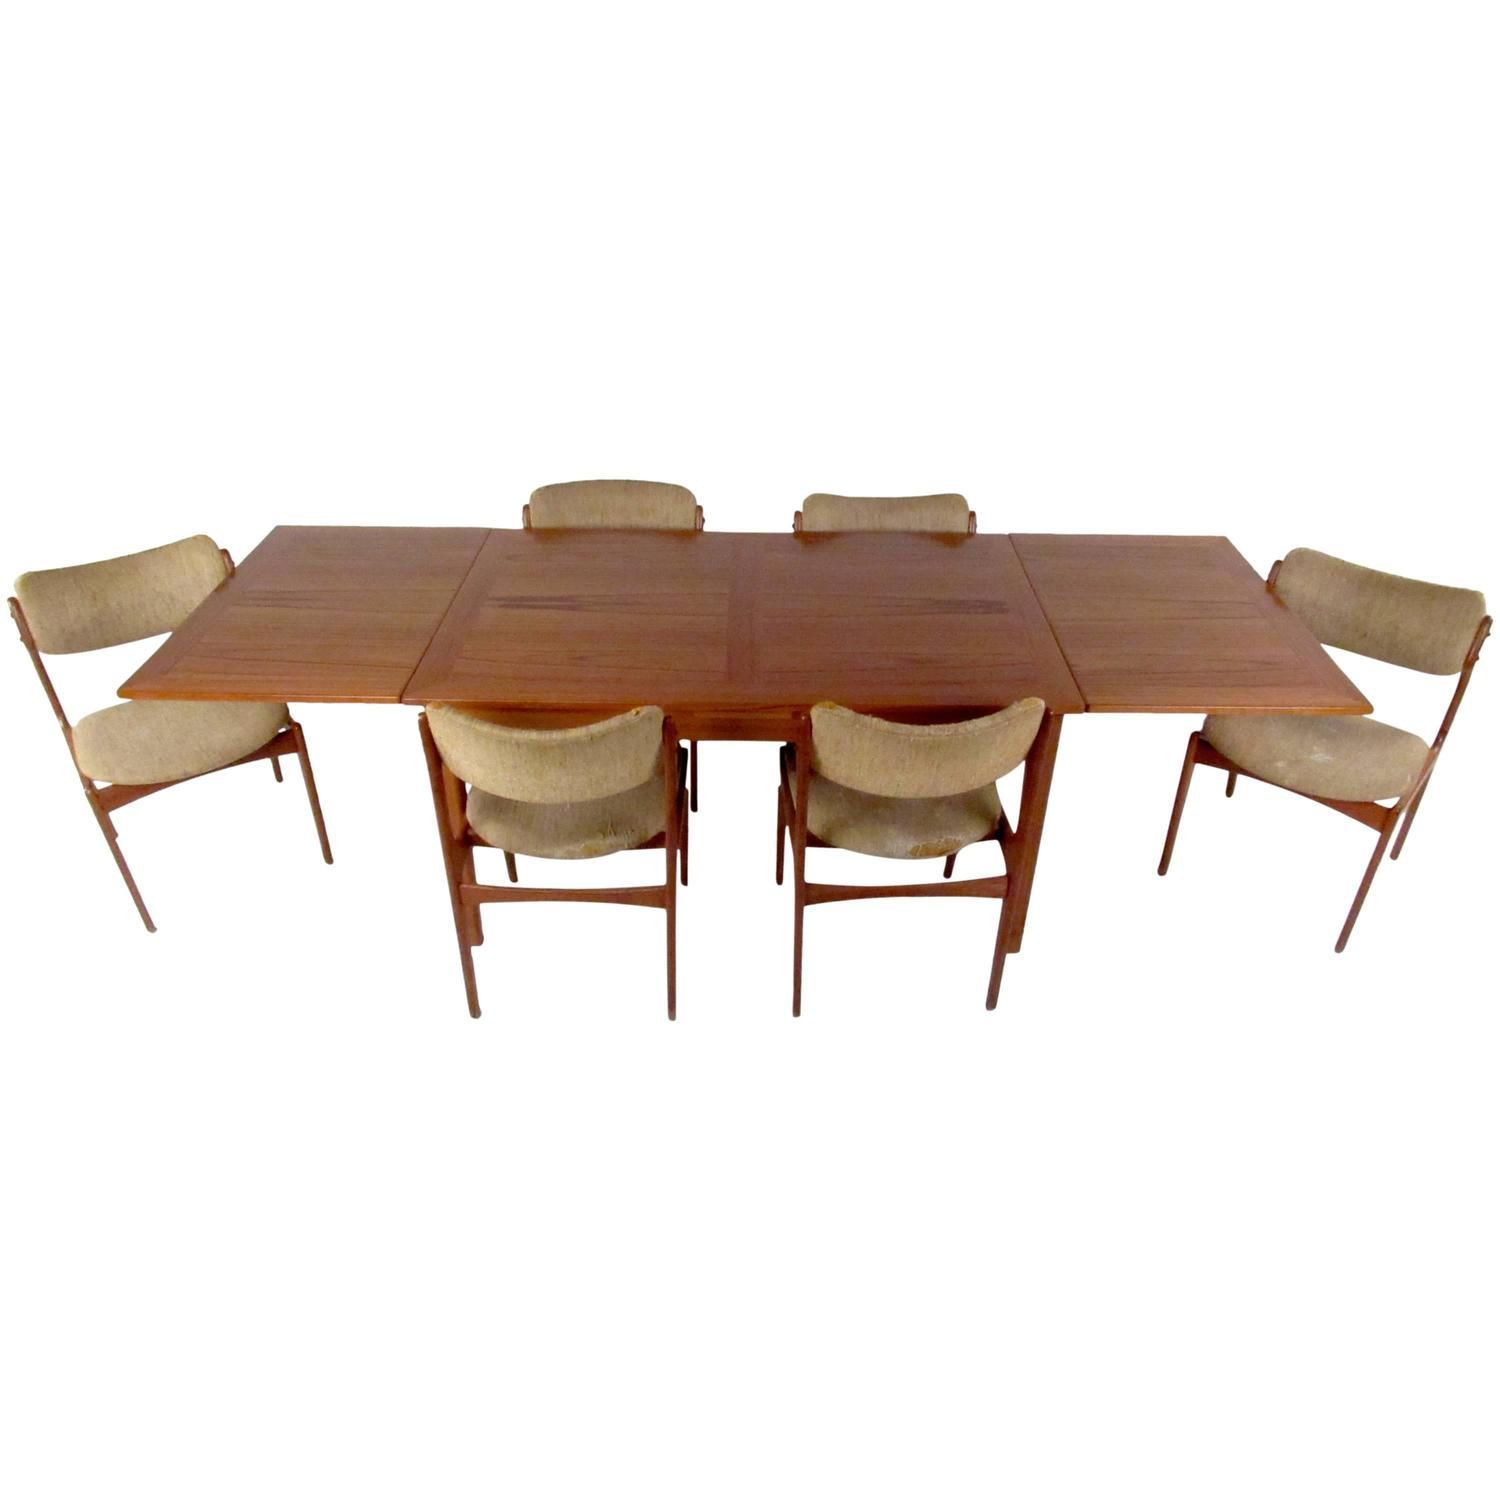 O D M¸bler Denmark Furniture 12 For Sale at 1stdibs